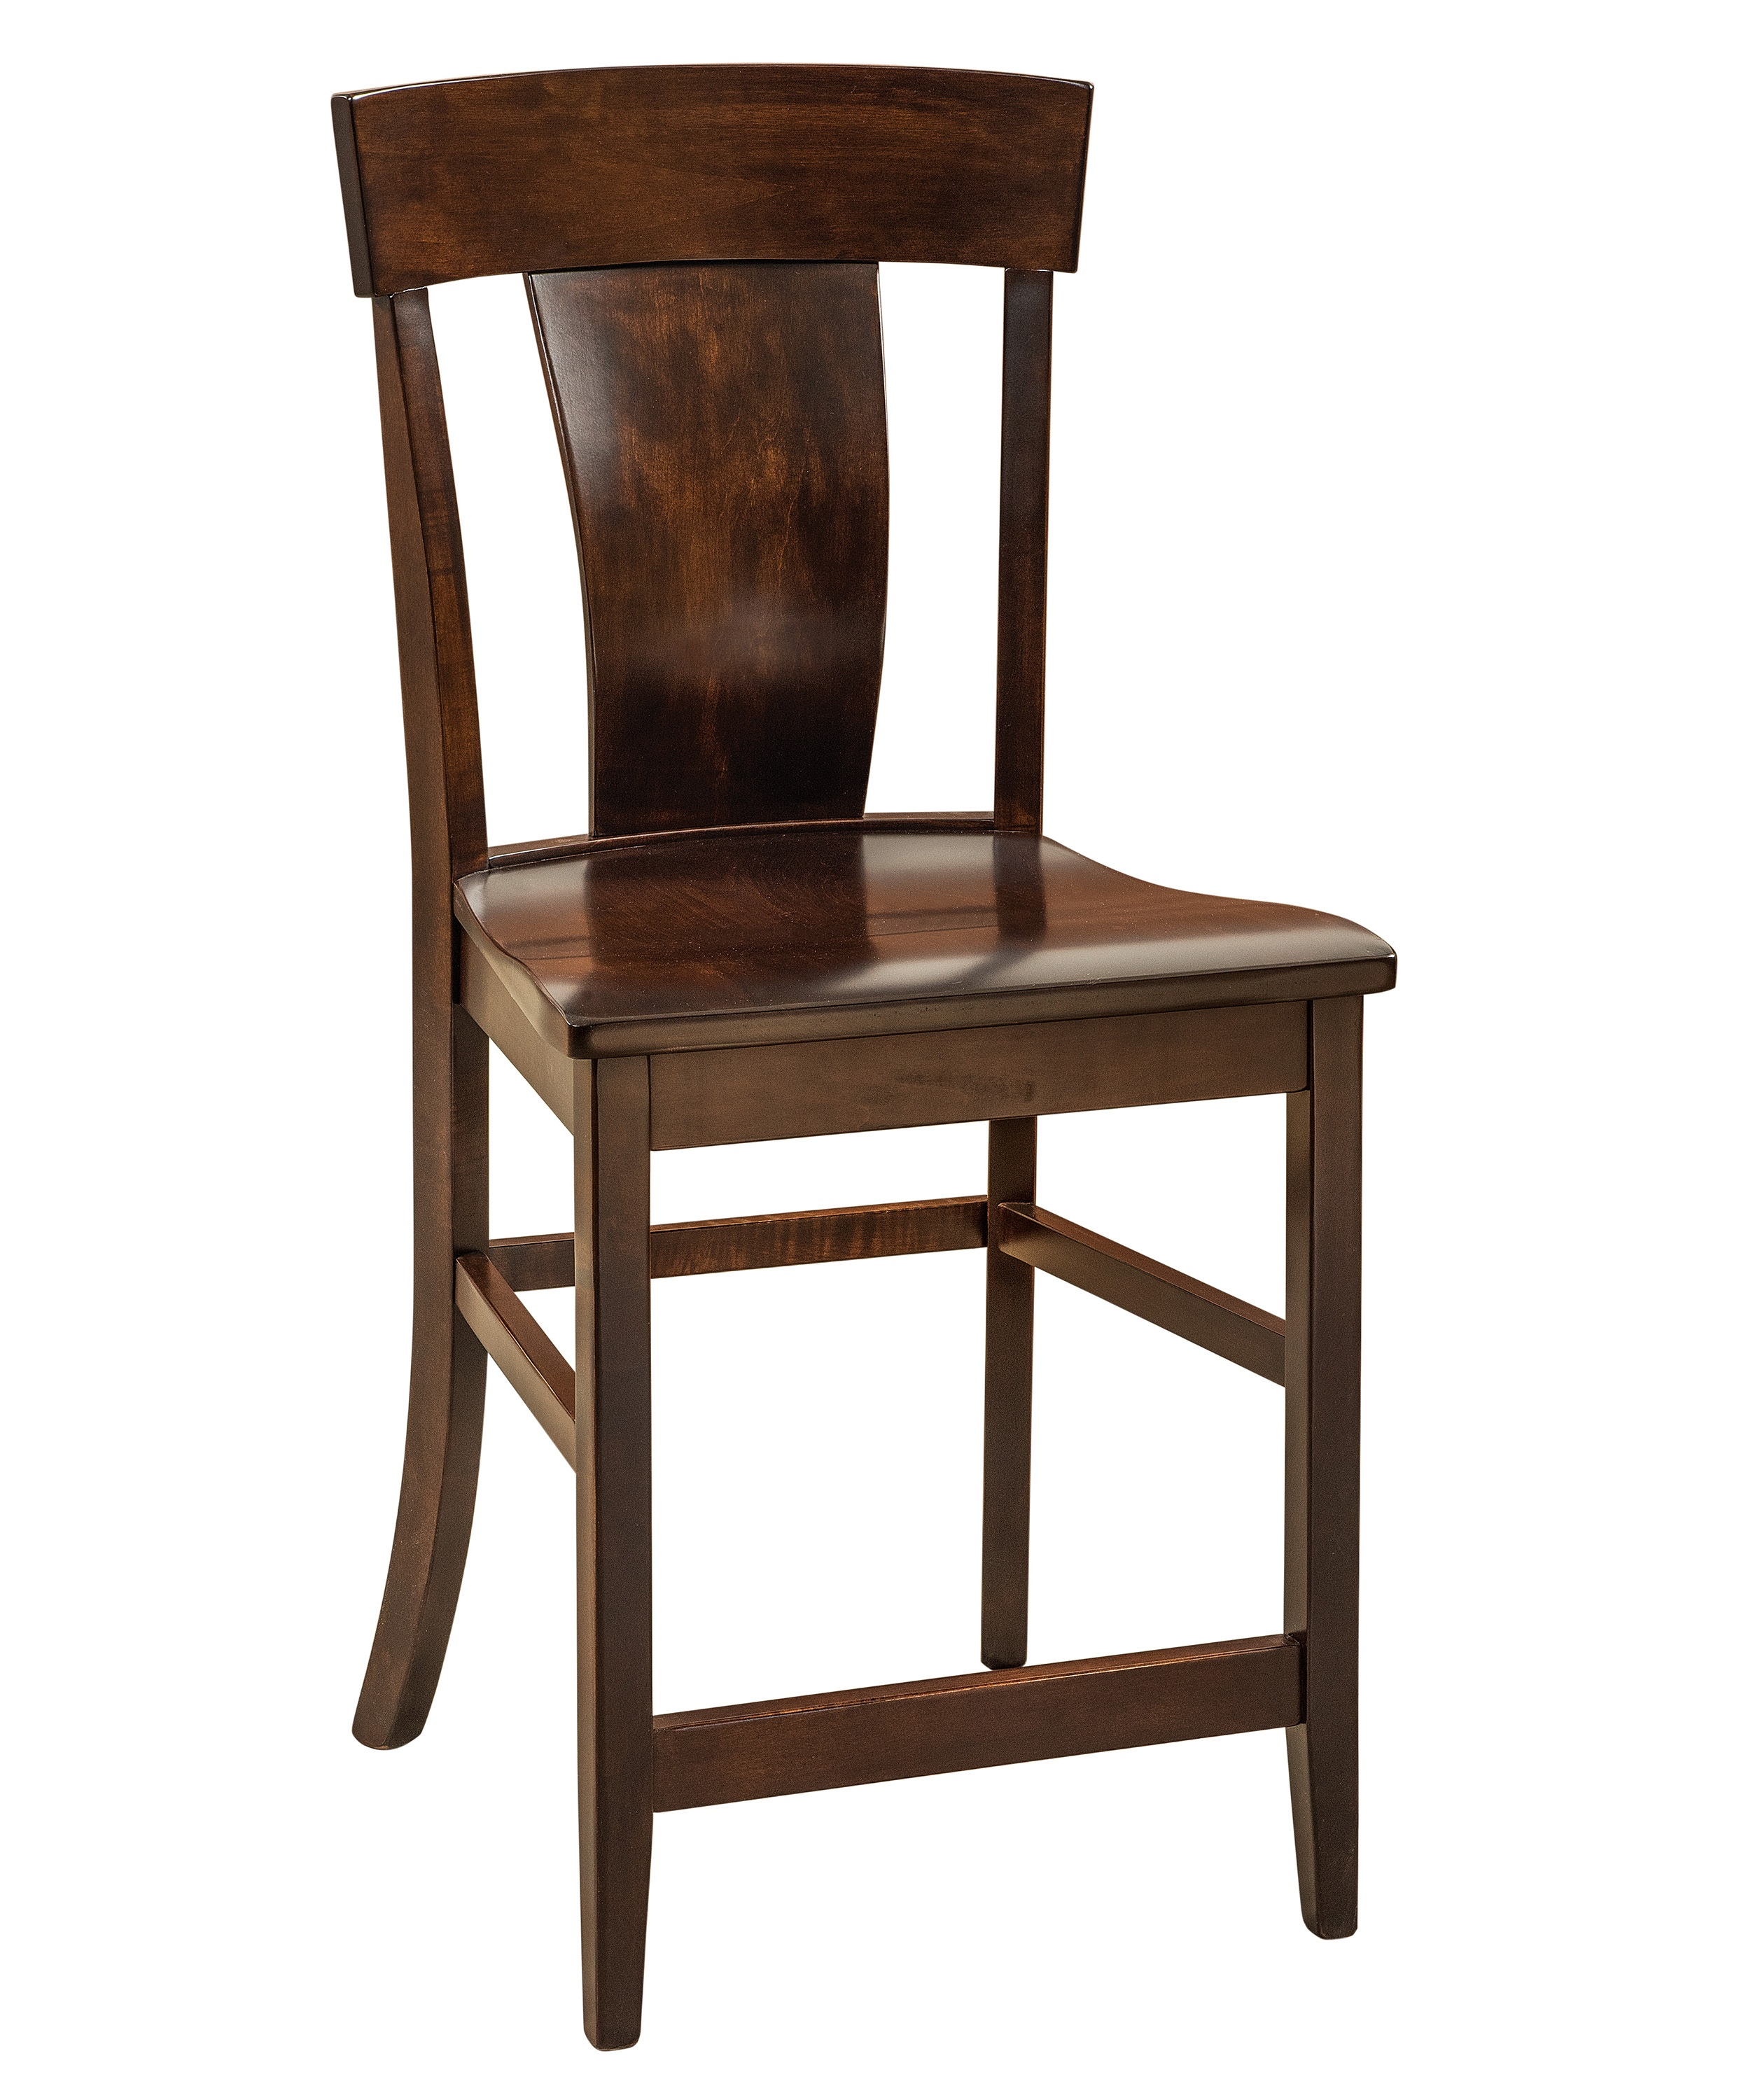 stool chair height chapel chairs with kneelers philippines f andn amish stationary counter wood